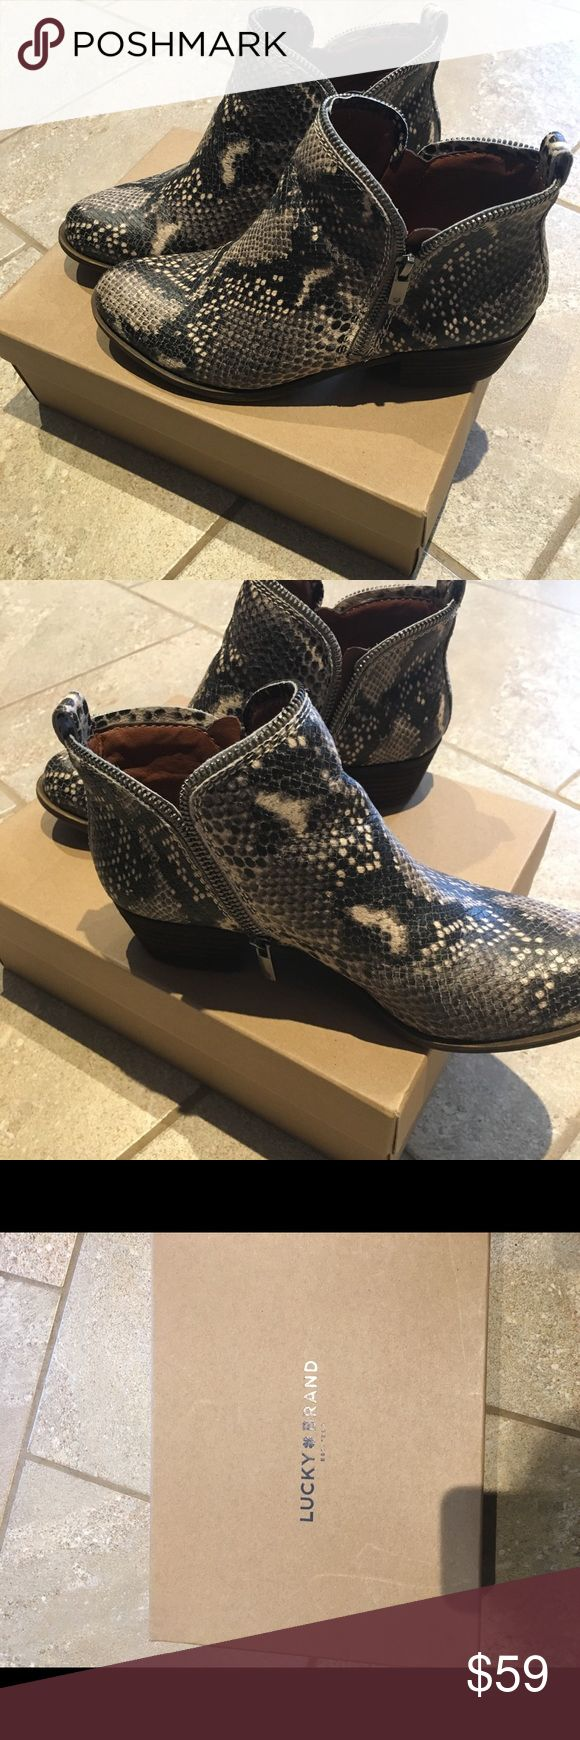 Lucky Brand Python print Leather 2 size zip size 8 Lucky brand booties. Python print leather. Double side zippers with zipper trim around the top. Low heel stacked leather. Size 8. Worn two times in almost new condition. Lucky Brand Shoes Ankle Boots & Booties